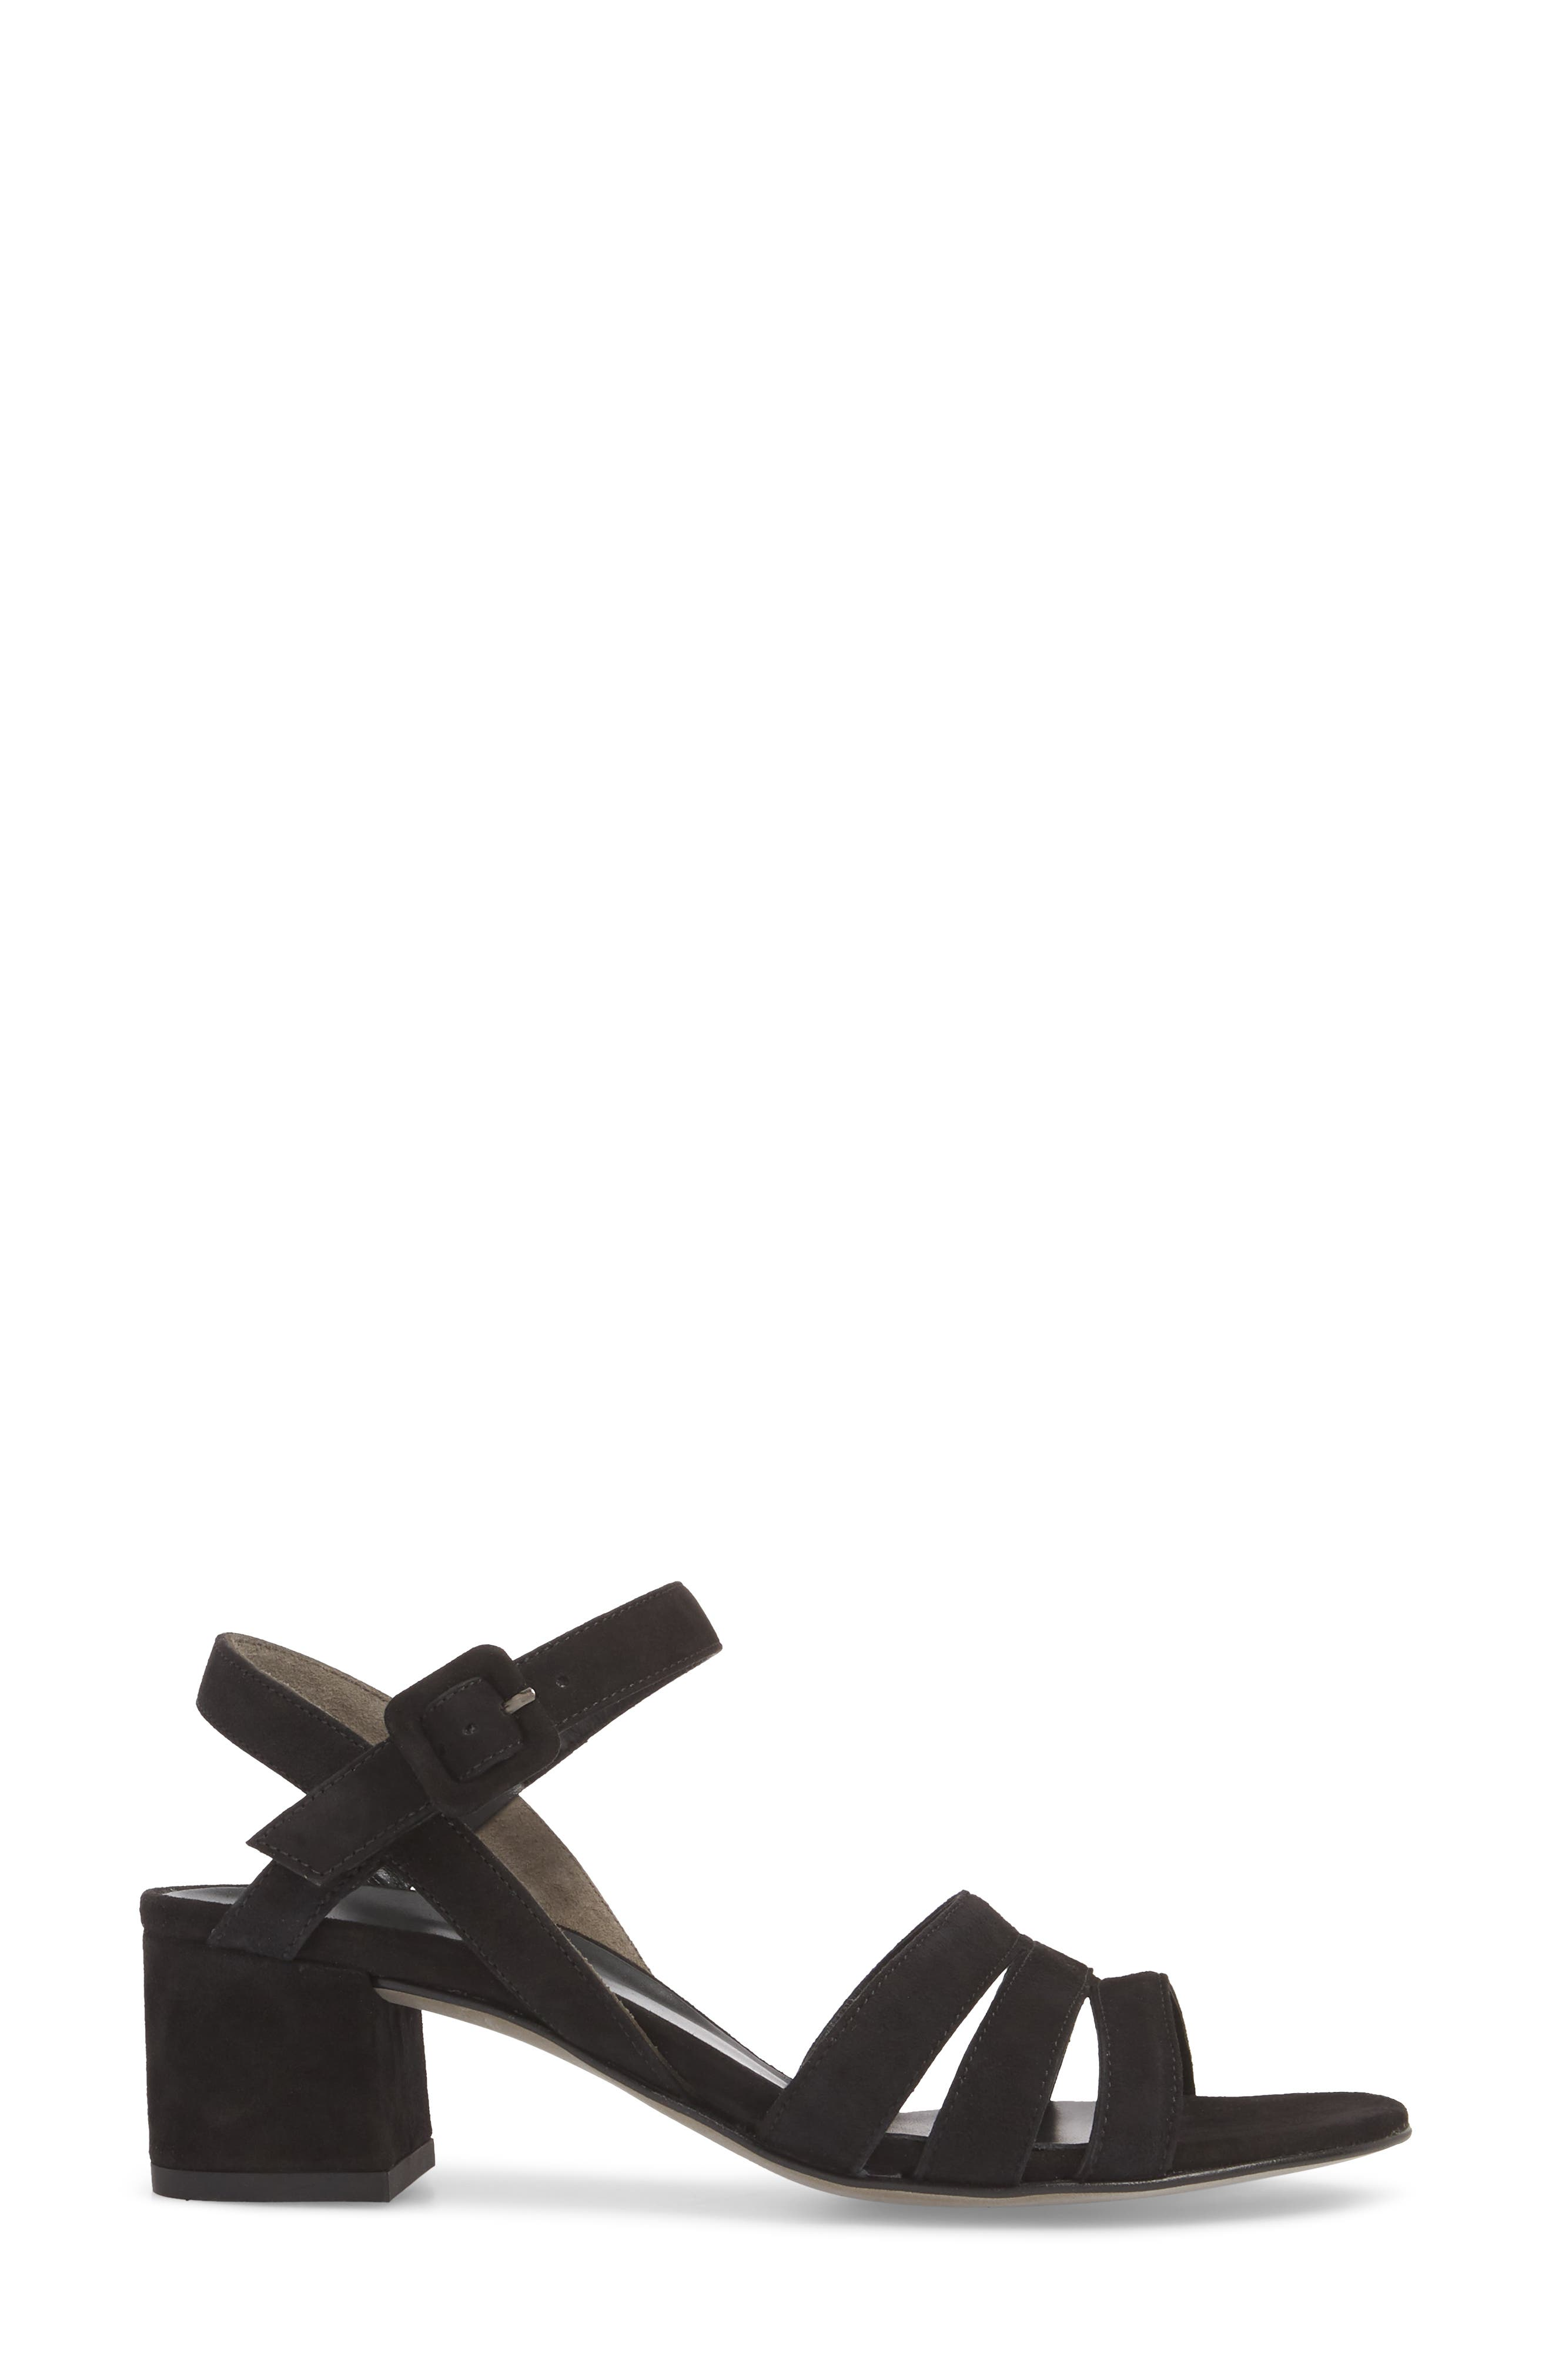 Rosemary Sandal,                             Alternate thumbnail 3, color,                             Black Suede